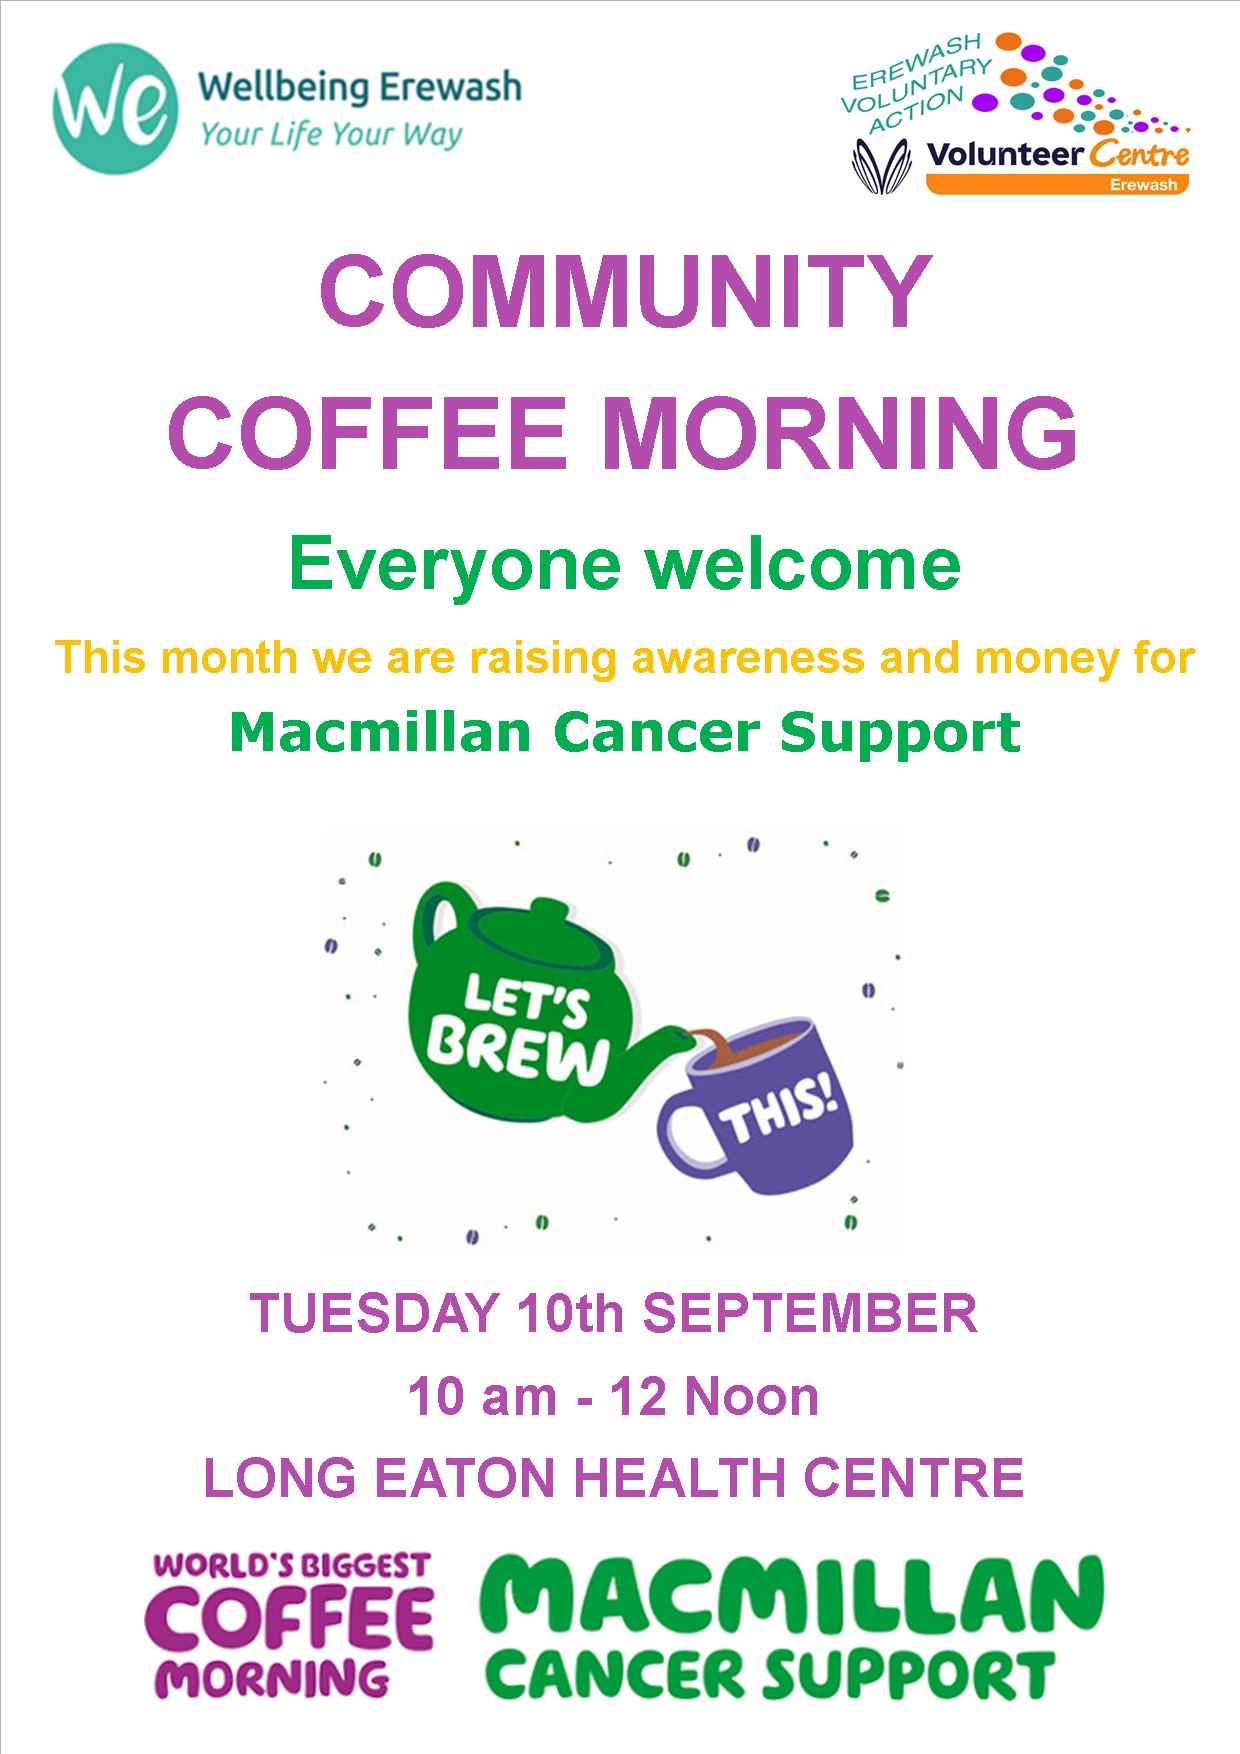 Community Coffee Morning Poster - SEPTEMBER 2019.png